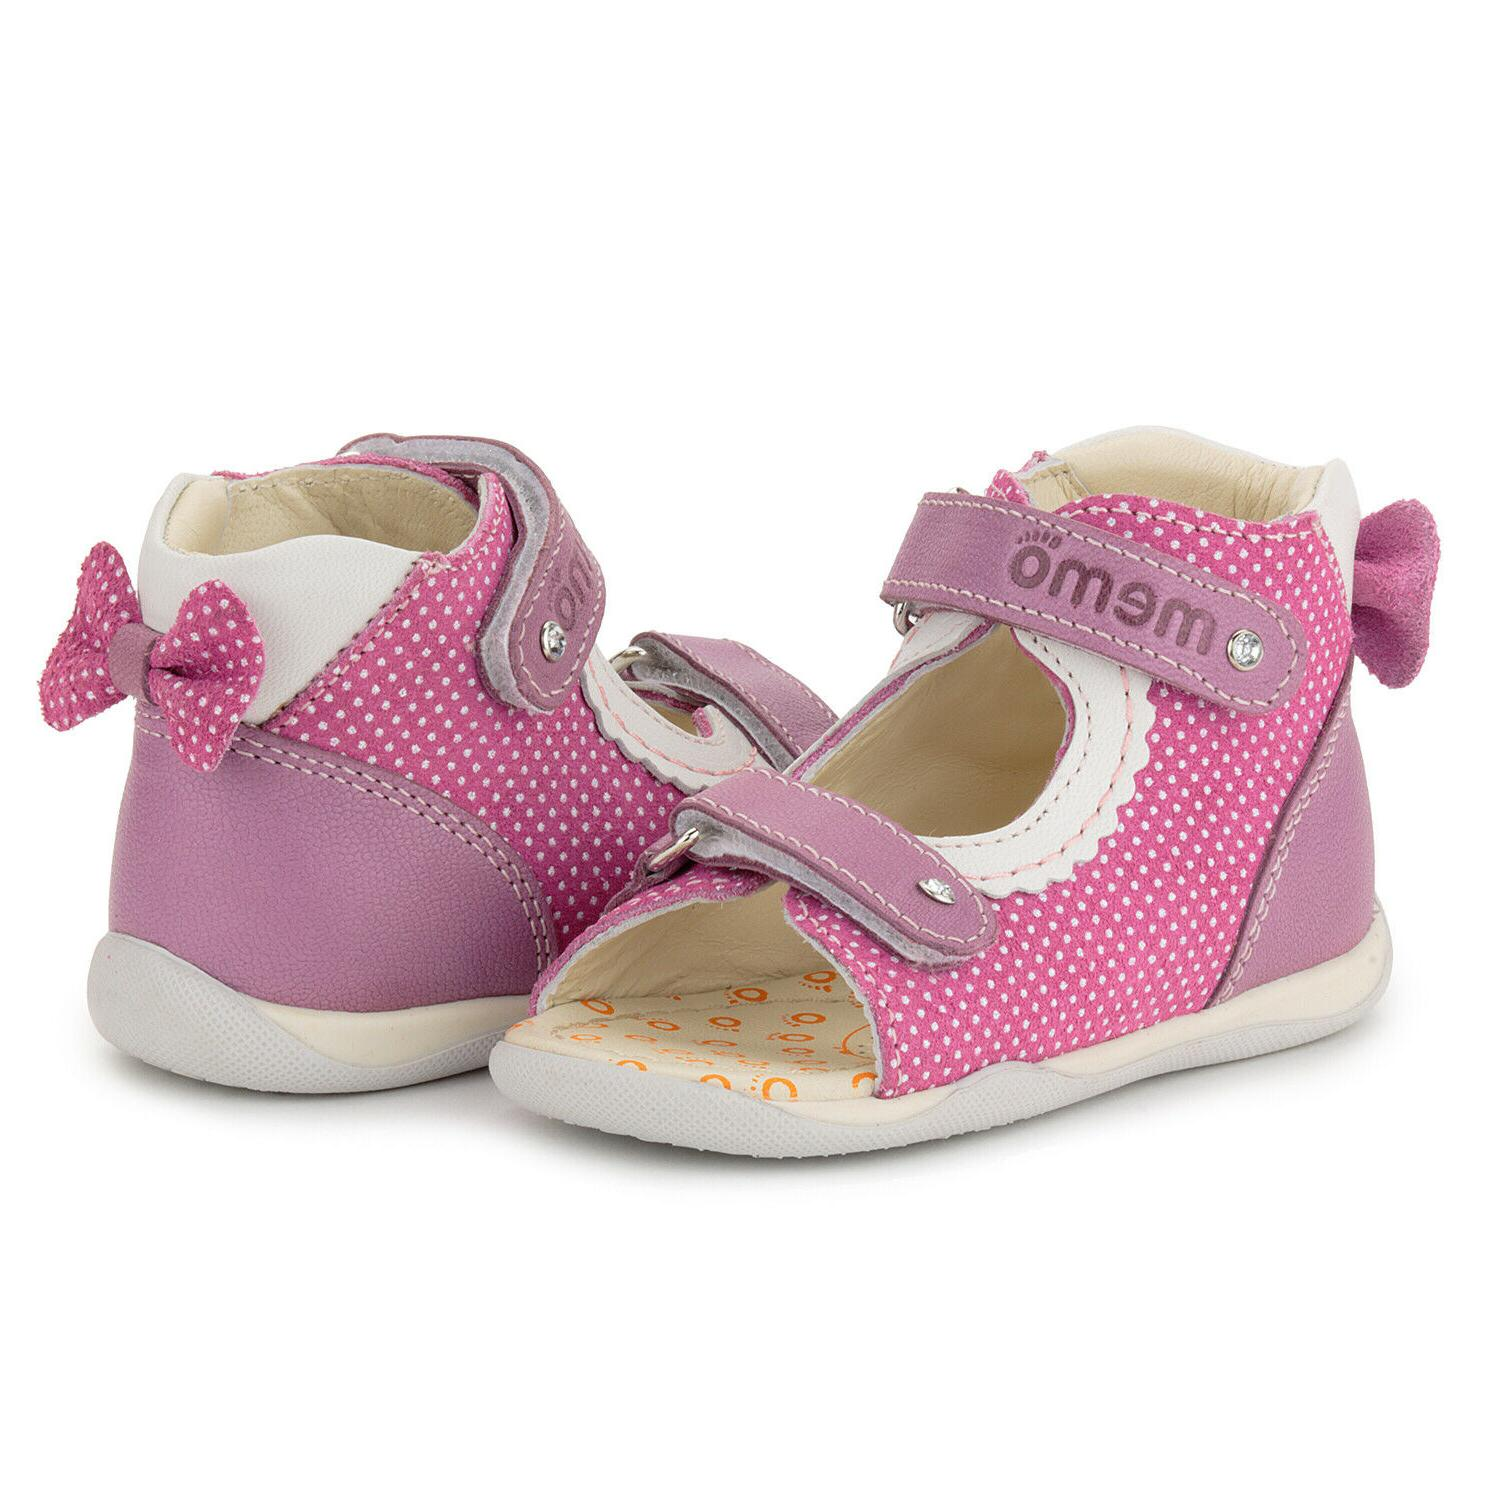 Memo MINI First Support Sandals,